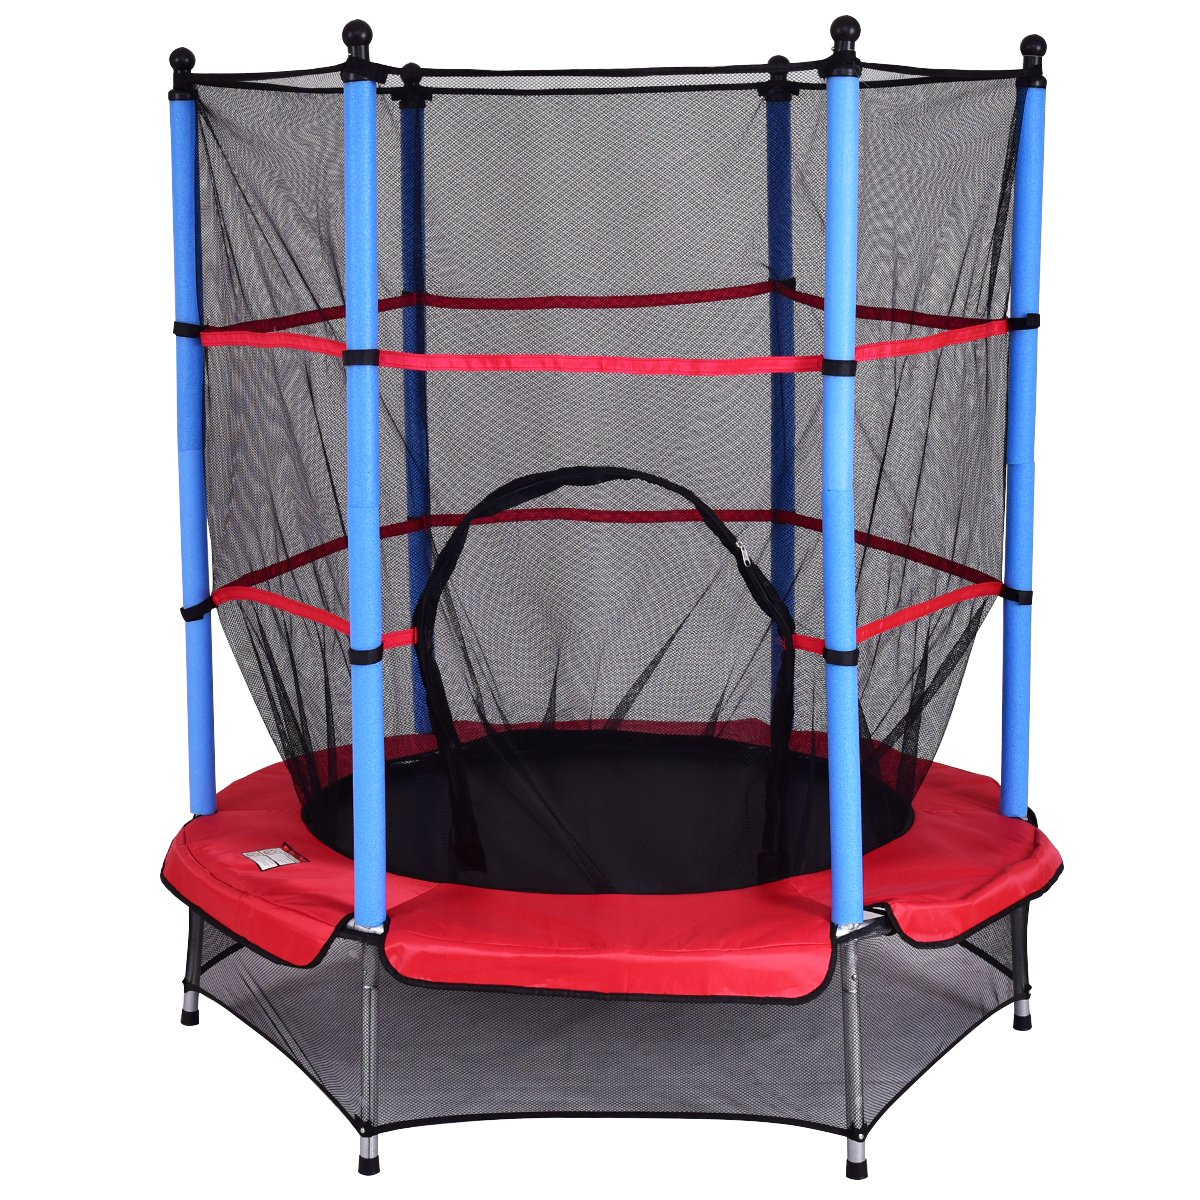 GYMAX Mini Trampoline, 55'' Round Rebounder Exercise Trampoline for Kids with Safety Pad Enclosure Combo (Blue)